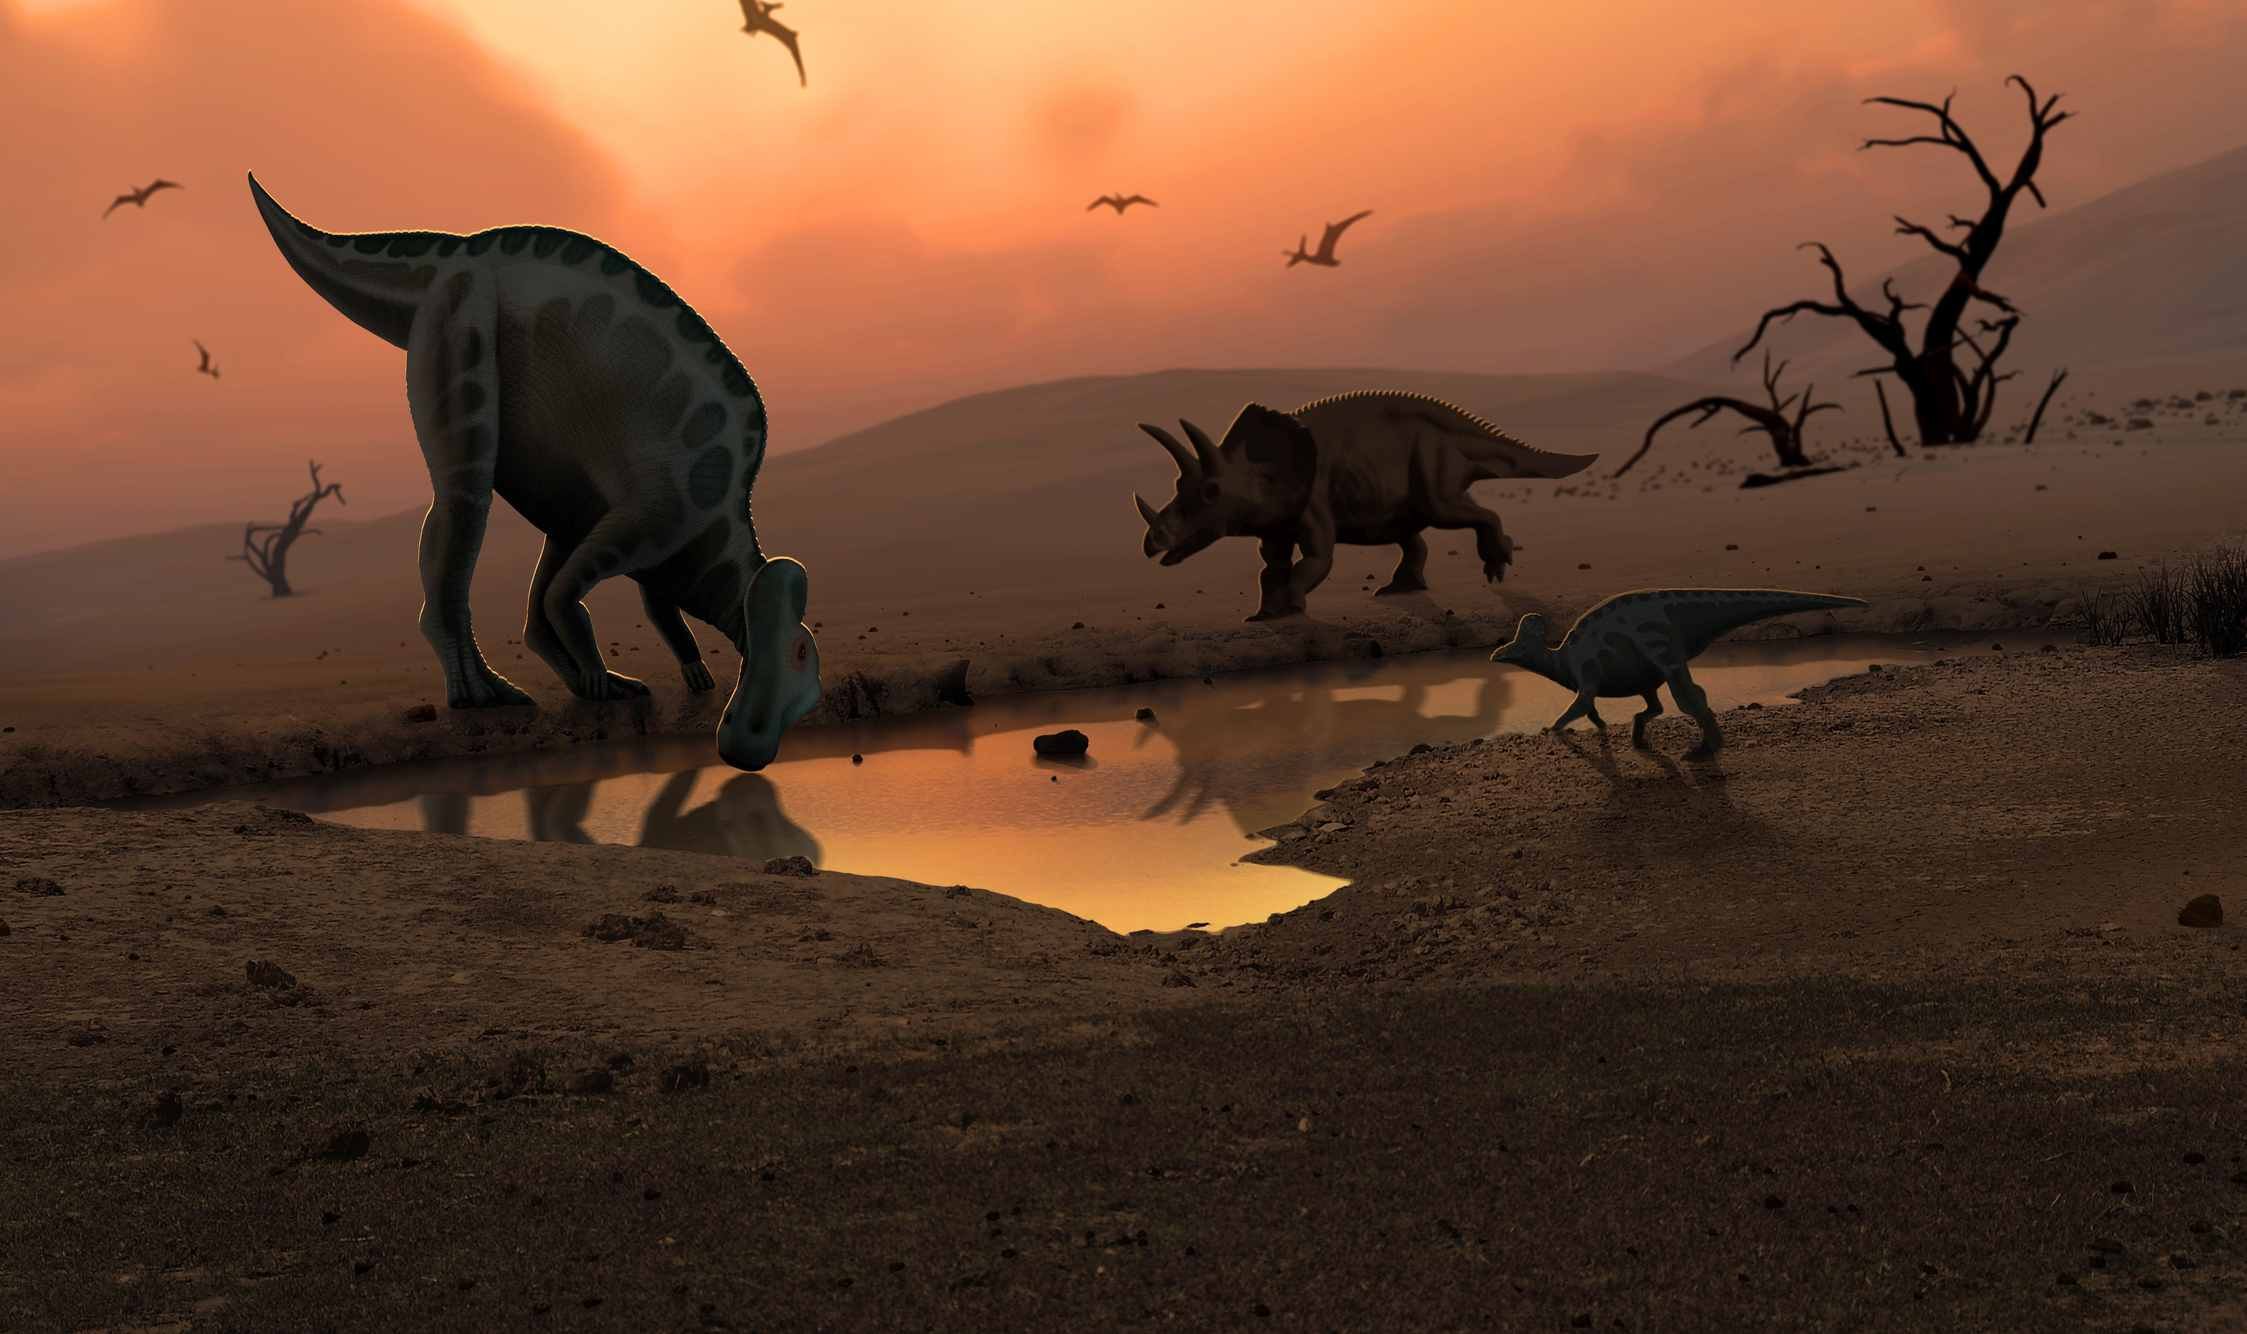 Illustration of Triceratops and other creatures at a watering hole at sunset